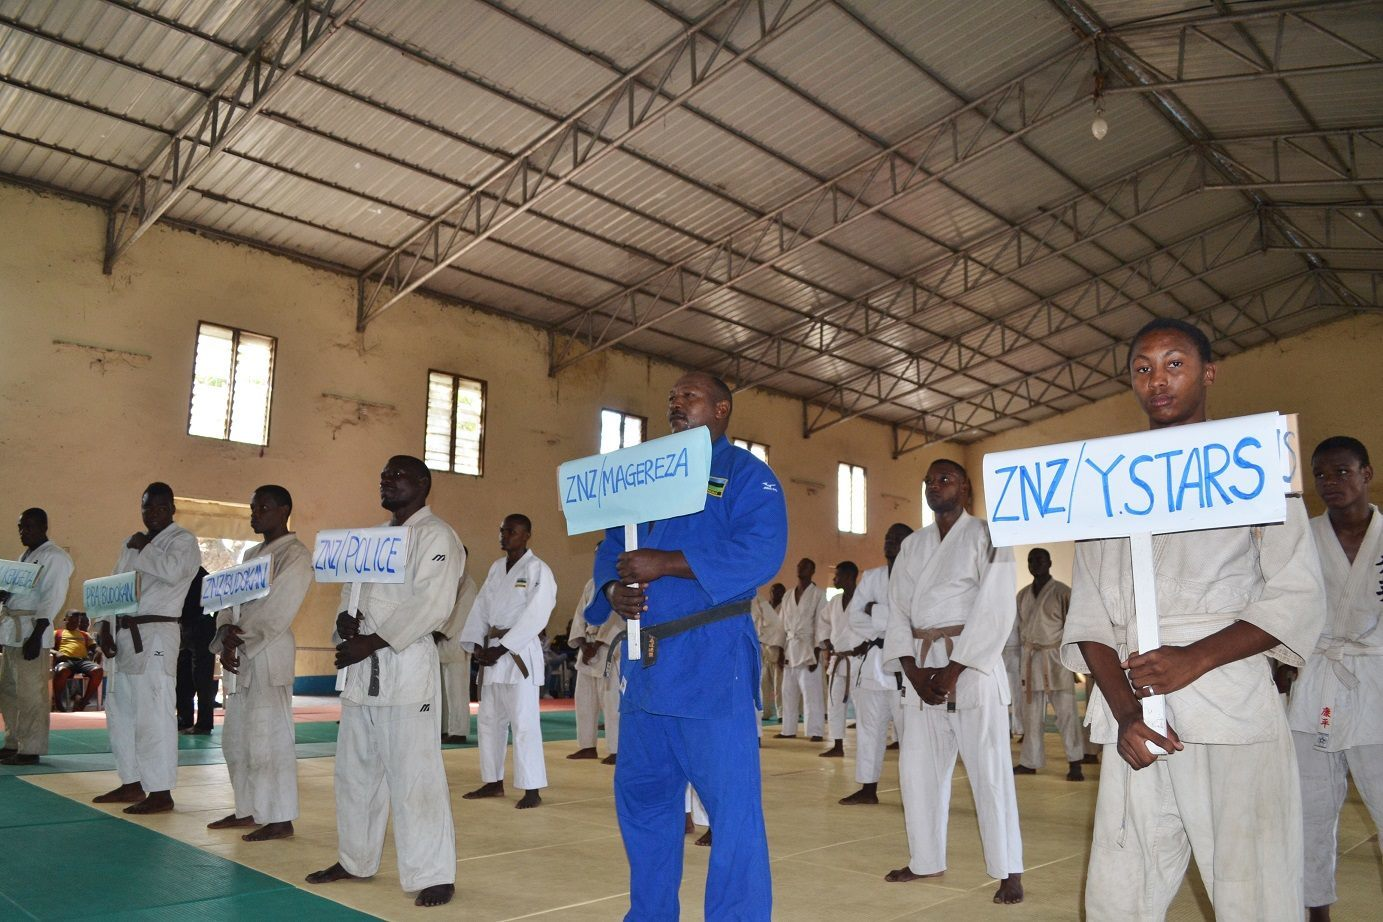 ZANZIBAR WEGHT CATEGORY JUDO CHAMPIONSHIP2018~ザンジバル柔道選手権大会2018_a0088841_10362585.jpg